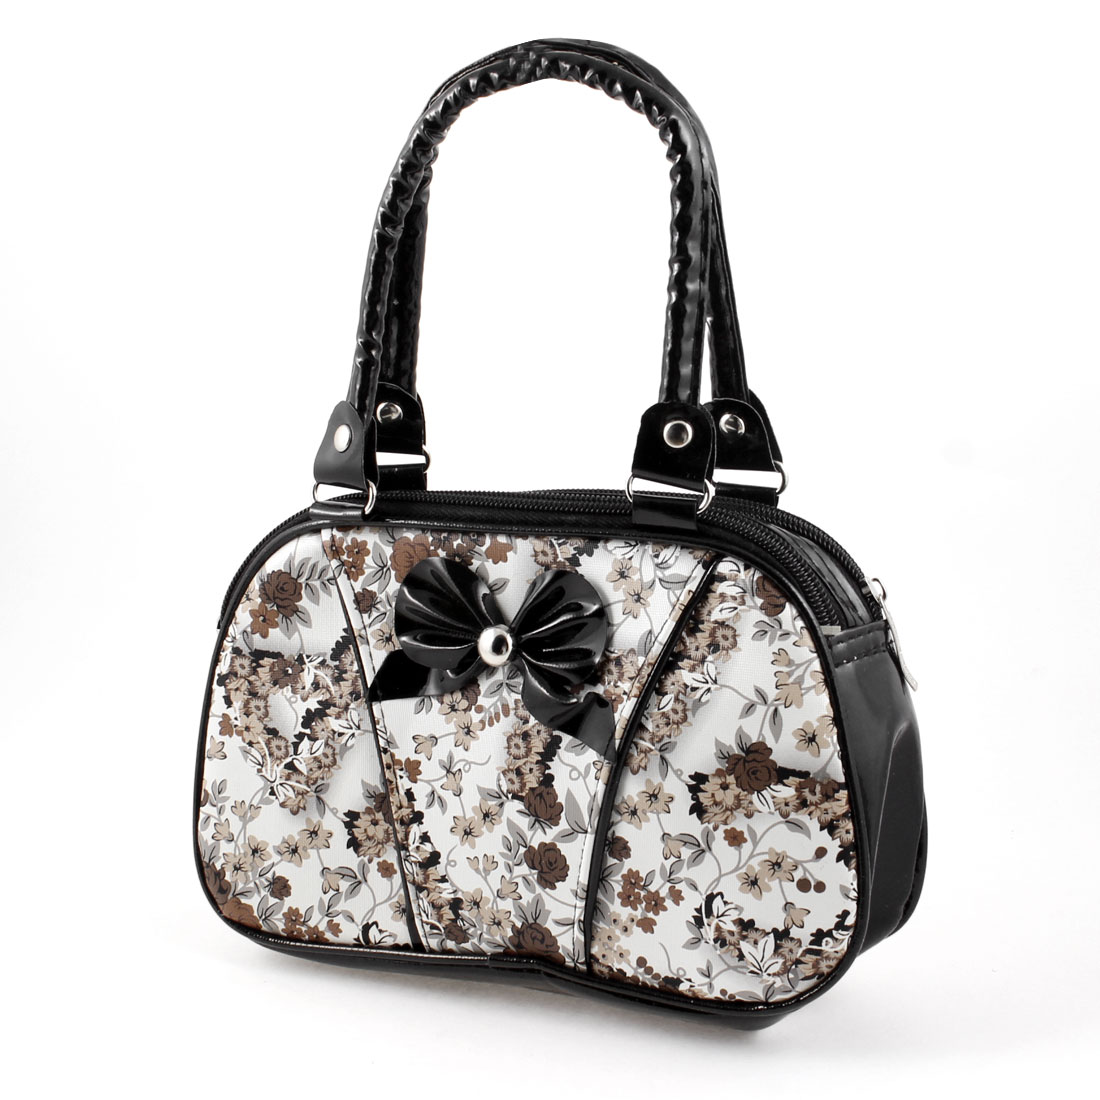 Lady Flower Print Bowknot Decor Double Strap Zipper Closure Handbag Change Purse Black White